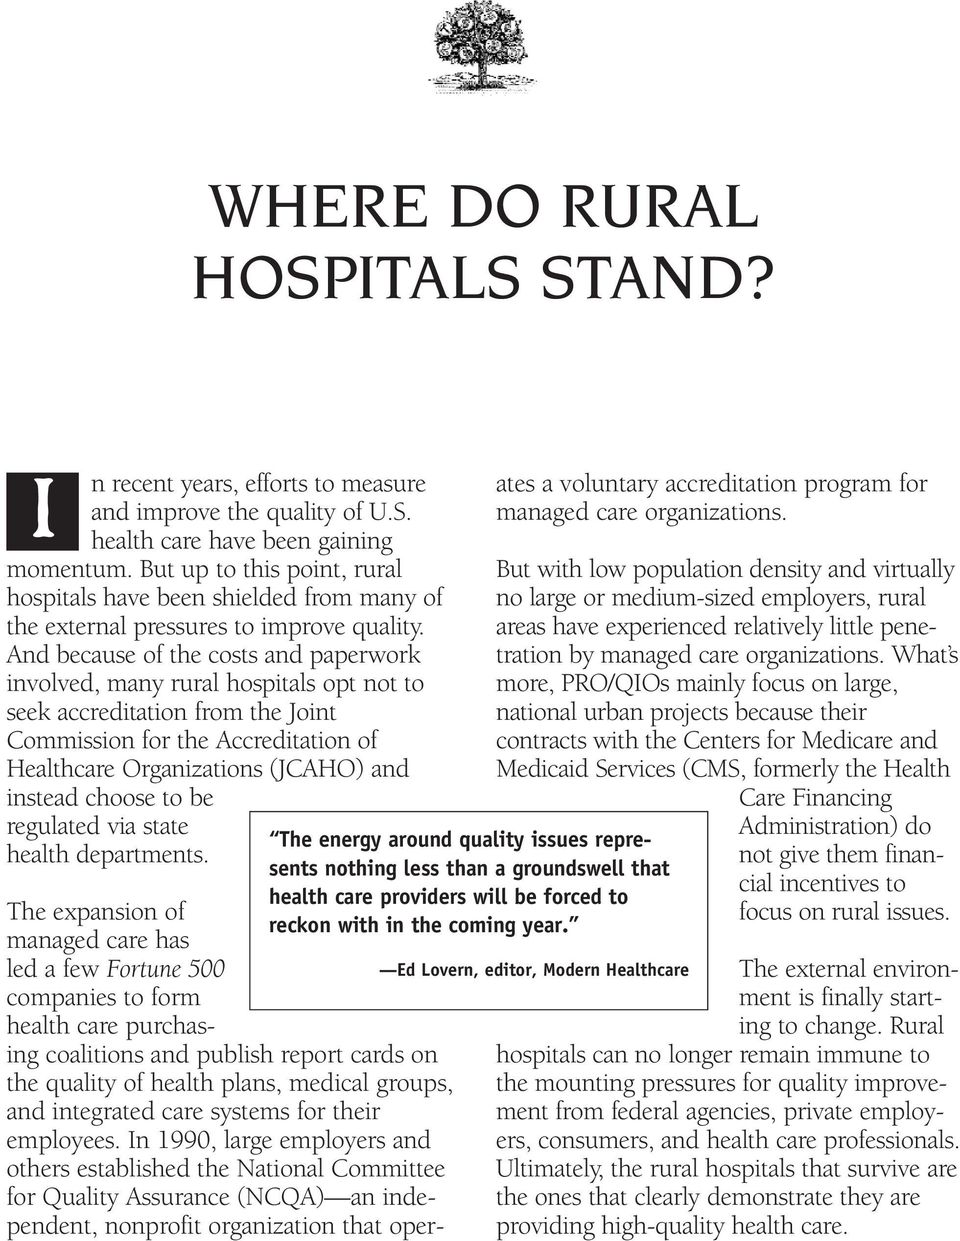 And because of the costs and paperwork involved, many rural hospitals opt not to seek accreditation from the Joint Commission for the Accreditation of Healthcare Organizations (JCAHO) and instead